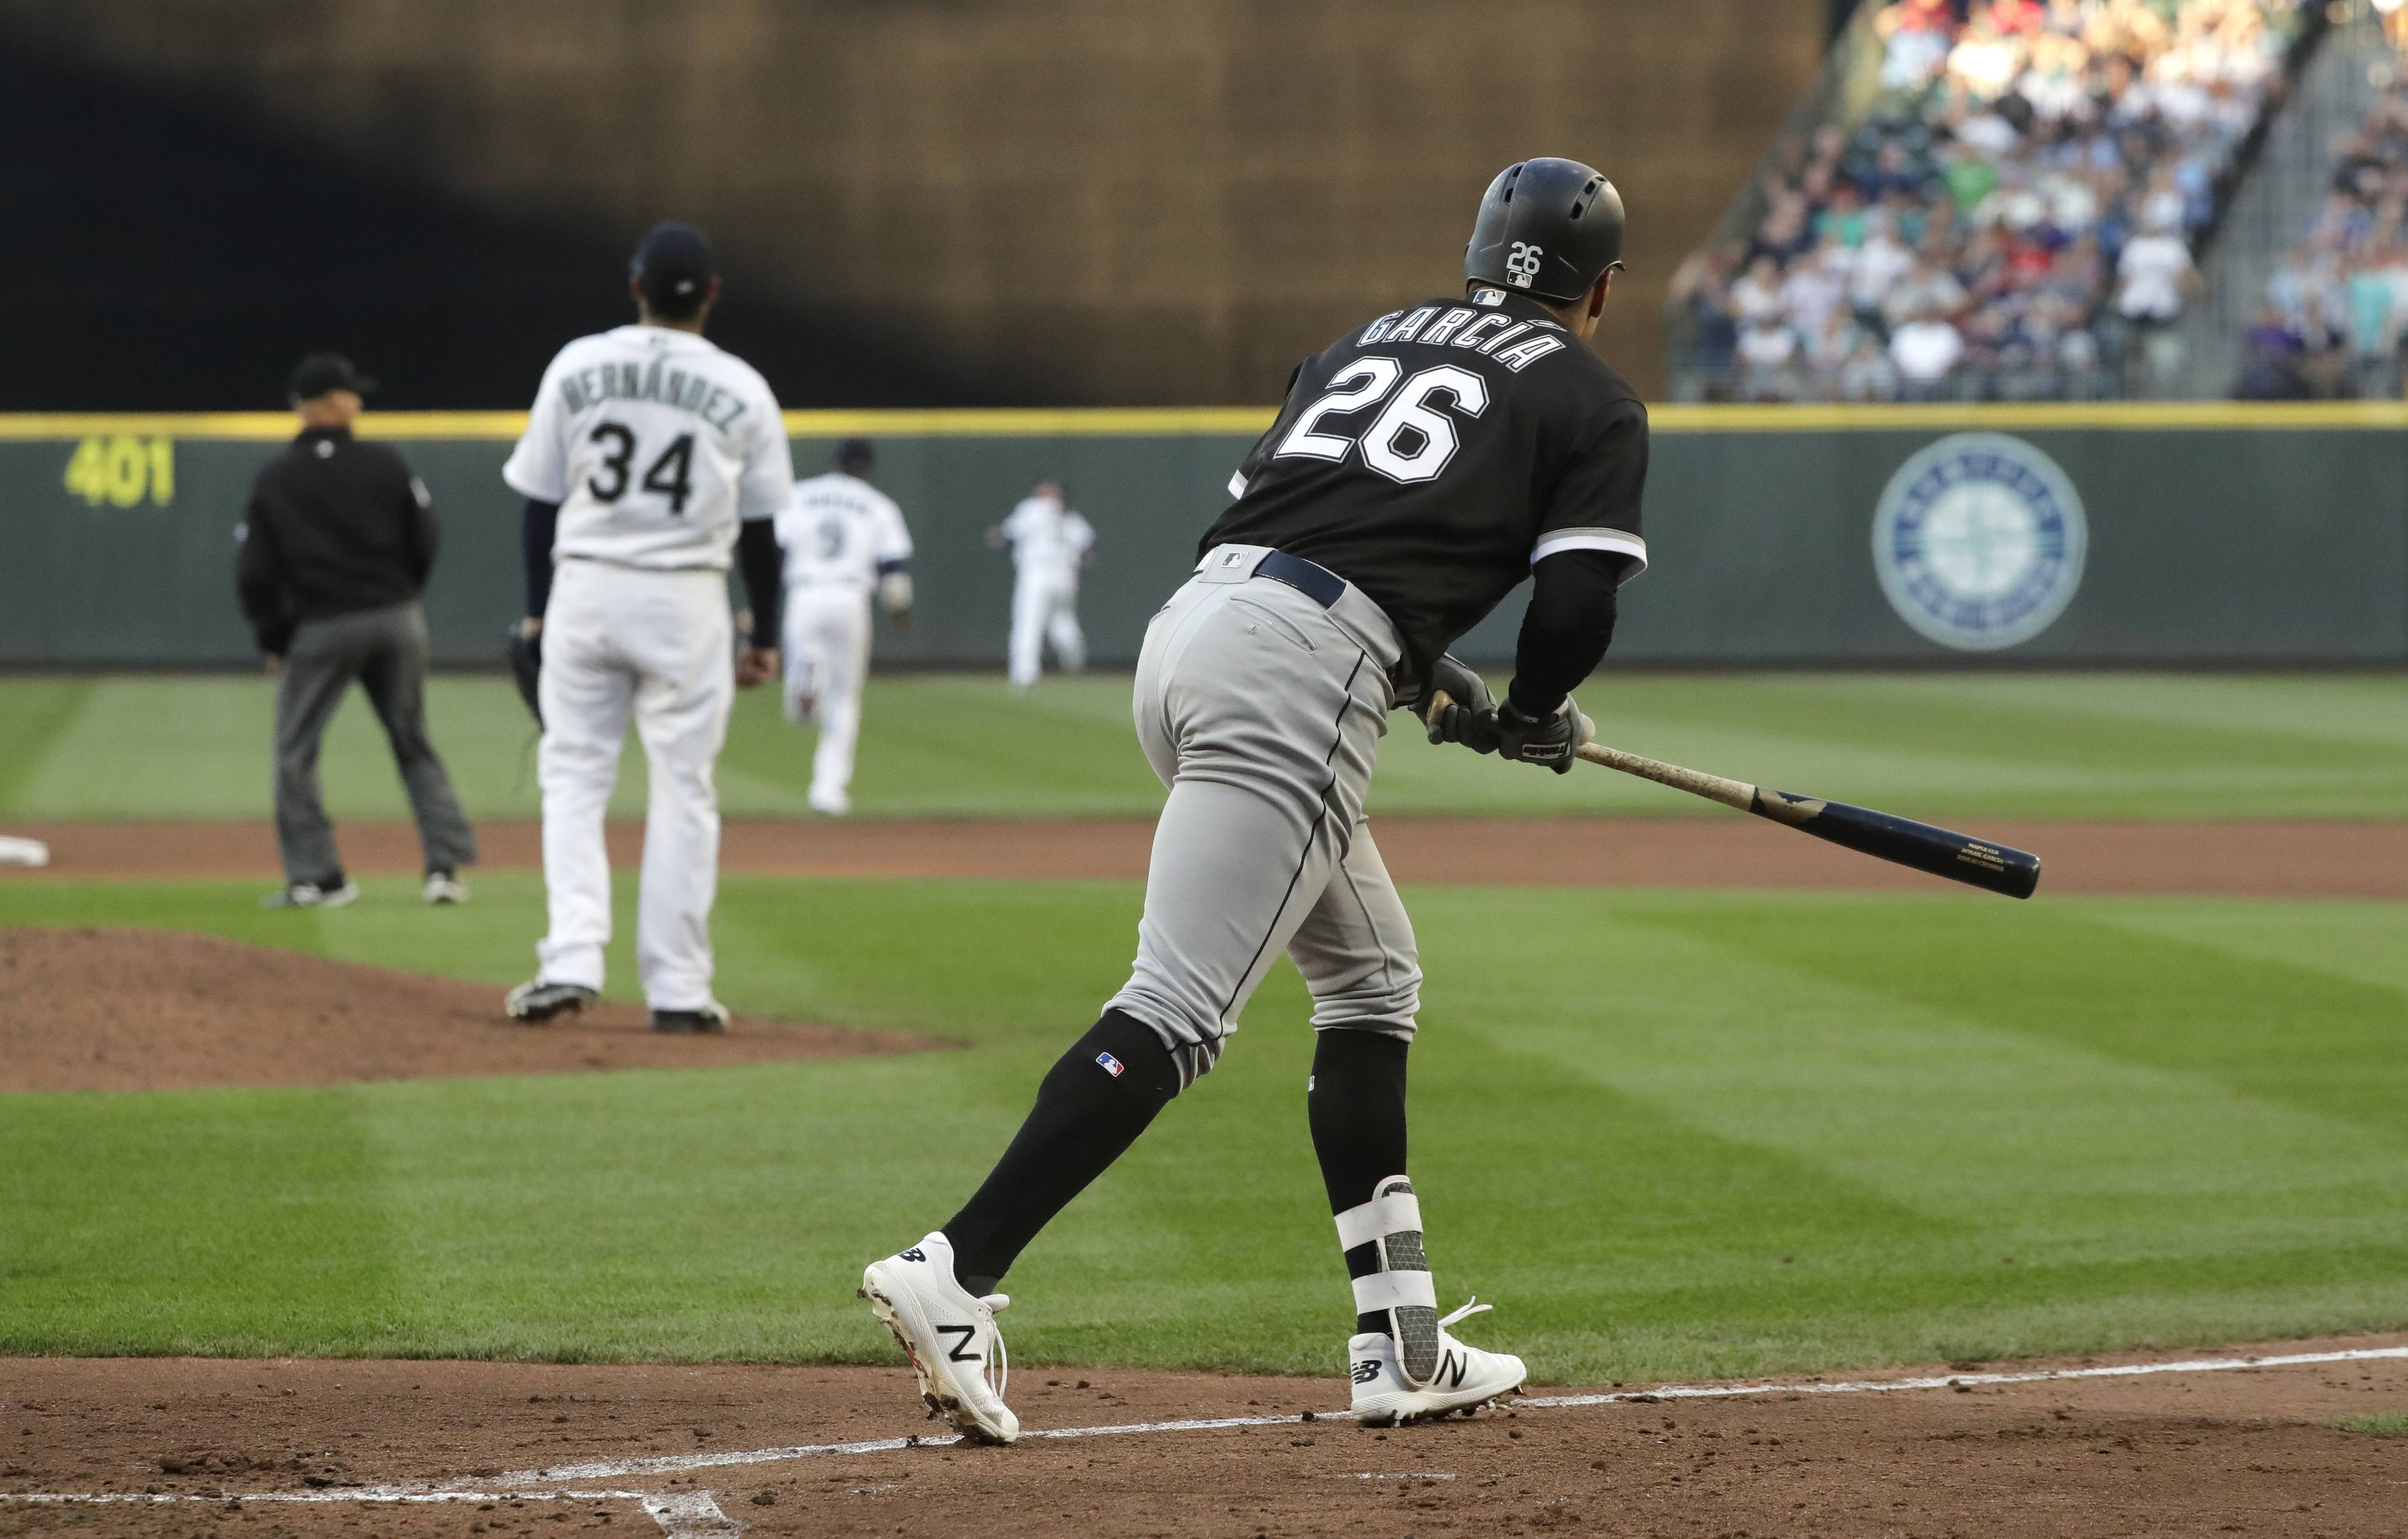 Chicago White Sox's Avisail Garcia (26) watches his three-run home run off Seattle Mariners starting pitcher Felix Hernandez (34) during the fourth inning of a baseball game Saturday, July 21, 2018, in Seattle. (AP Photo/Ted S. Warren)